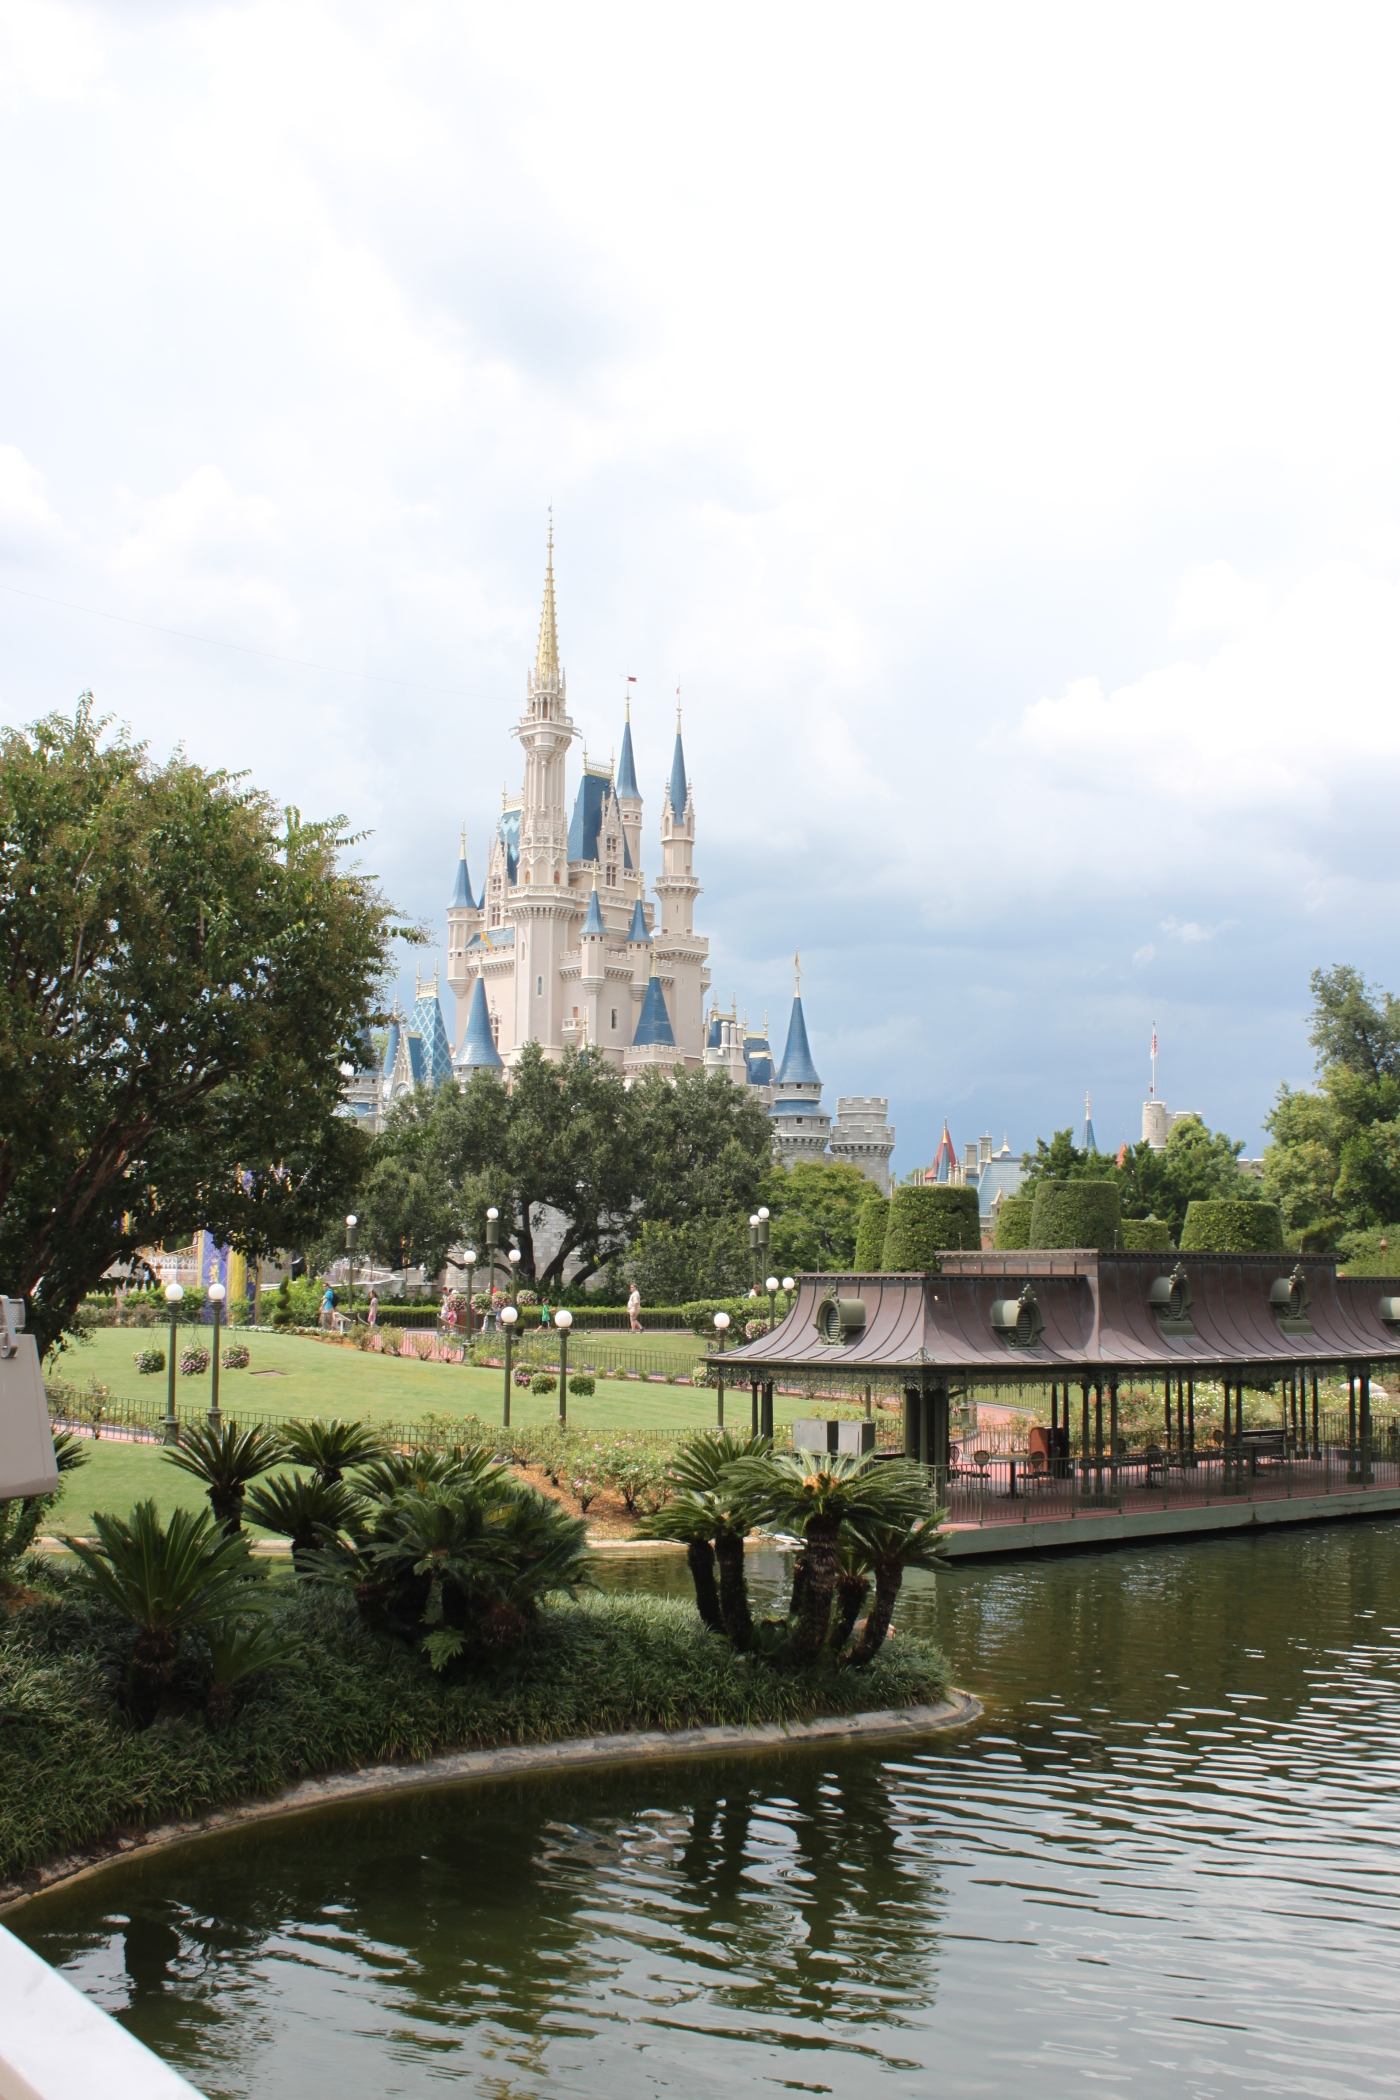 One of my favourite pictures that I've taken; taken from the Magic Kingdom Railroad.